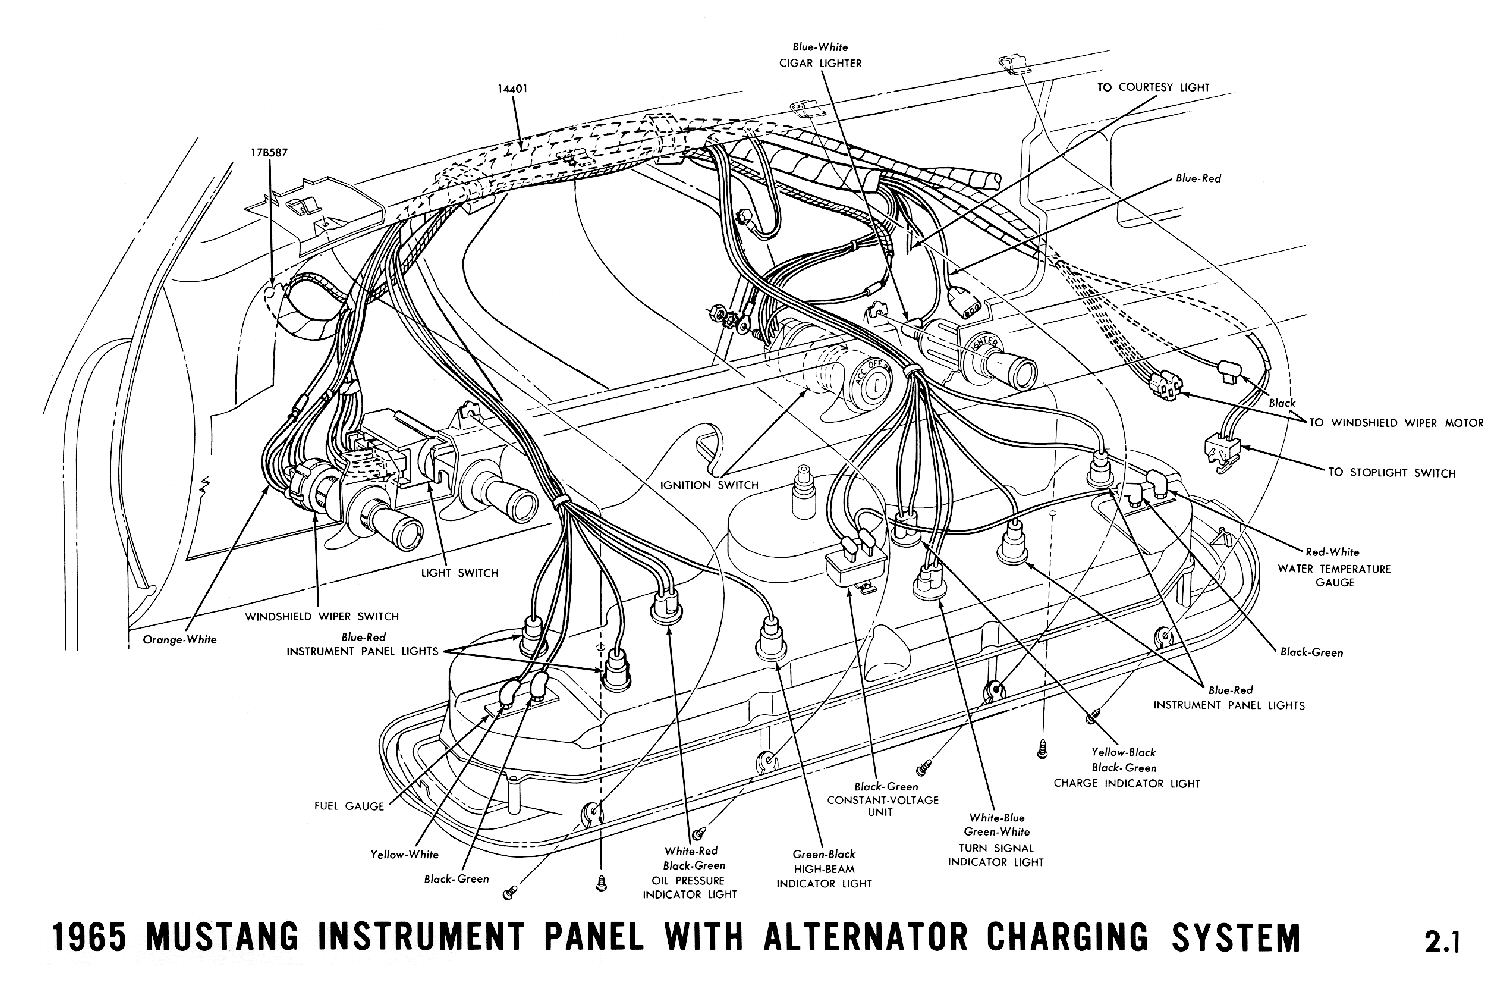 1965a 1965 mustang wiring diagrams average joe restoration 1965 mustang wiring harness diagram at fashall.co